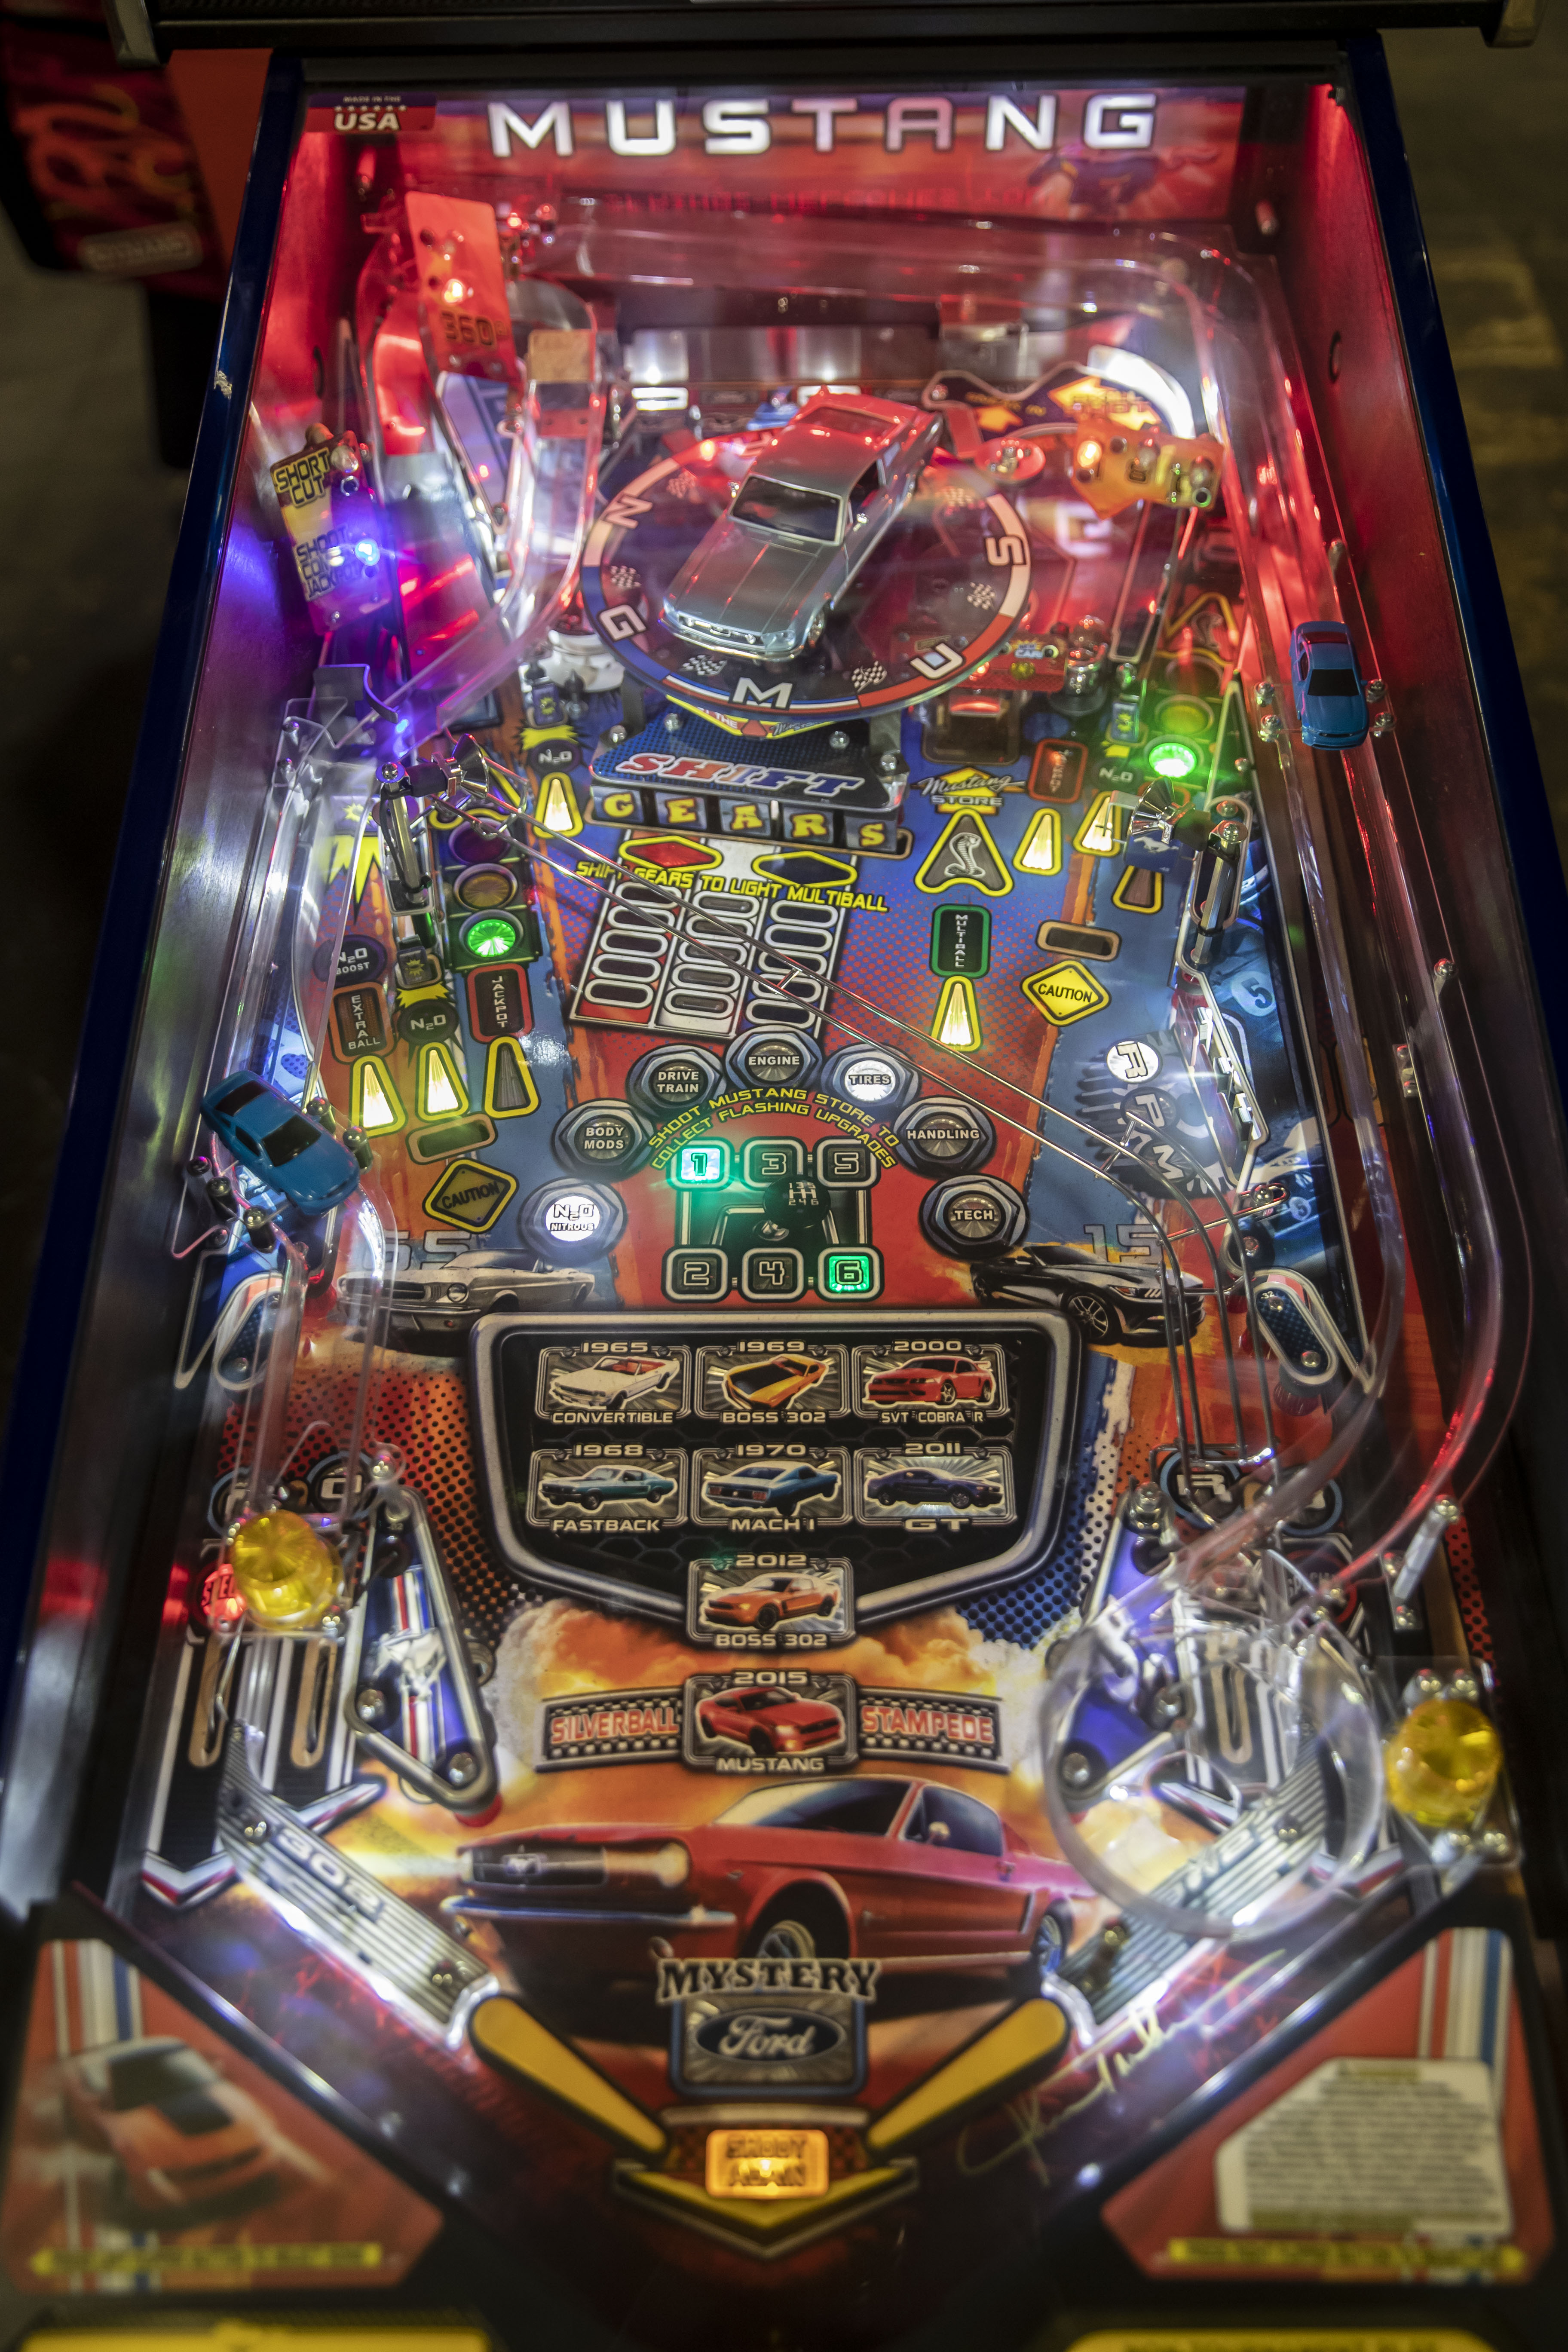 Lot 128 - Limited Edition #12 Stern Mustang Pinball - Functional. Used, shows commercial use. See pictures.